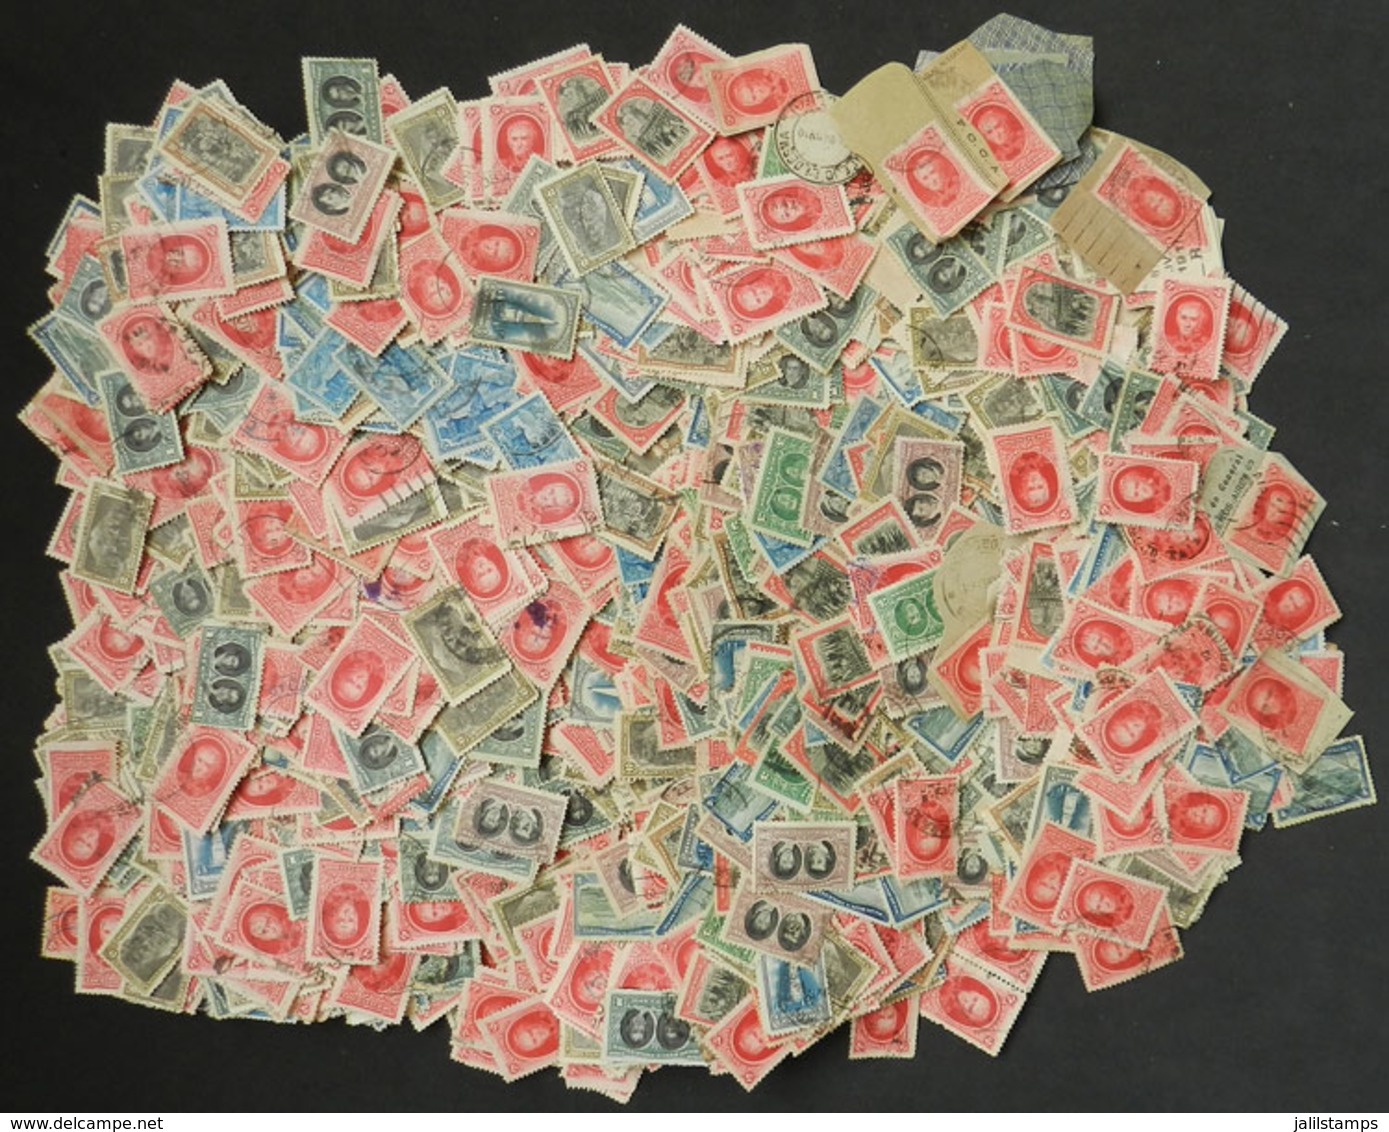 ARGENTINA: Small Box With Over 4,000 Stamps Of The Revolution Centenary, Excellent General Quality. Perfect Lot To Look  - Argentina